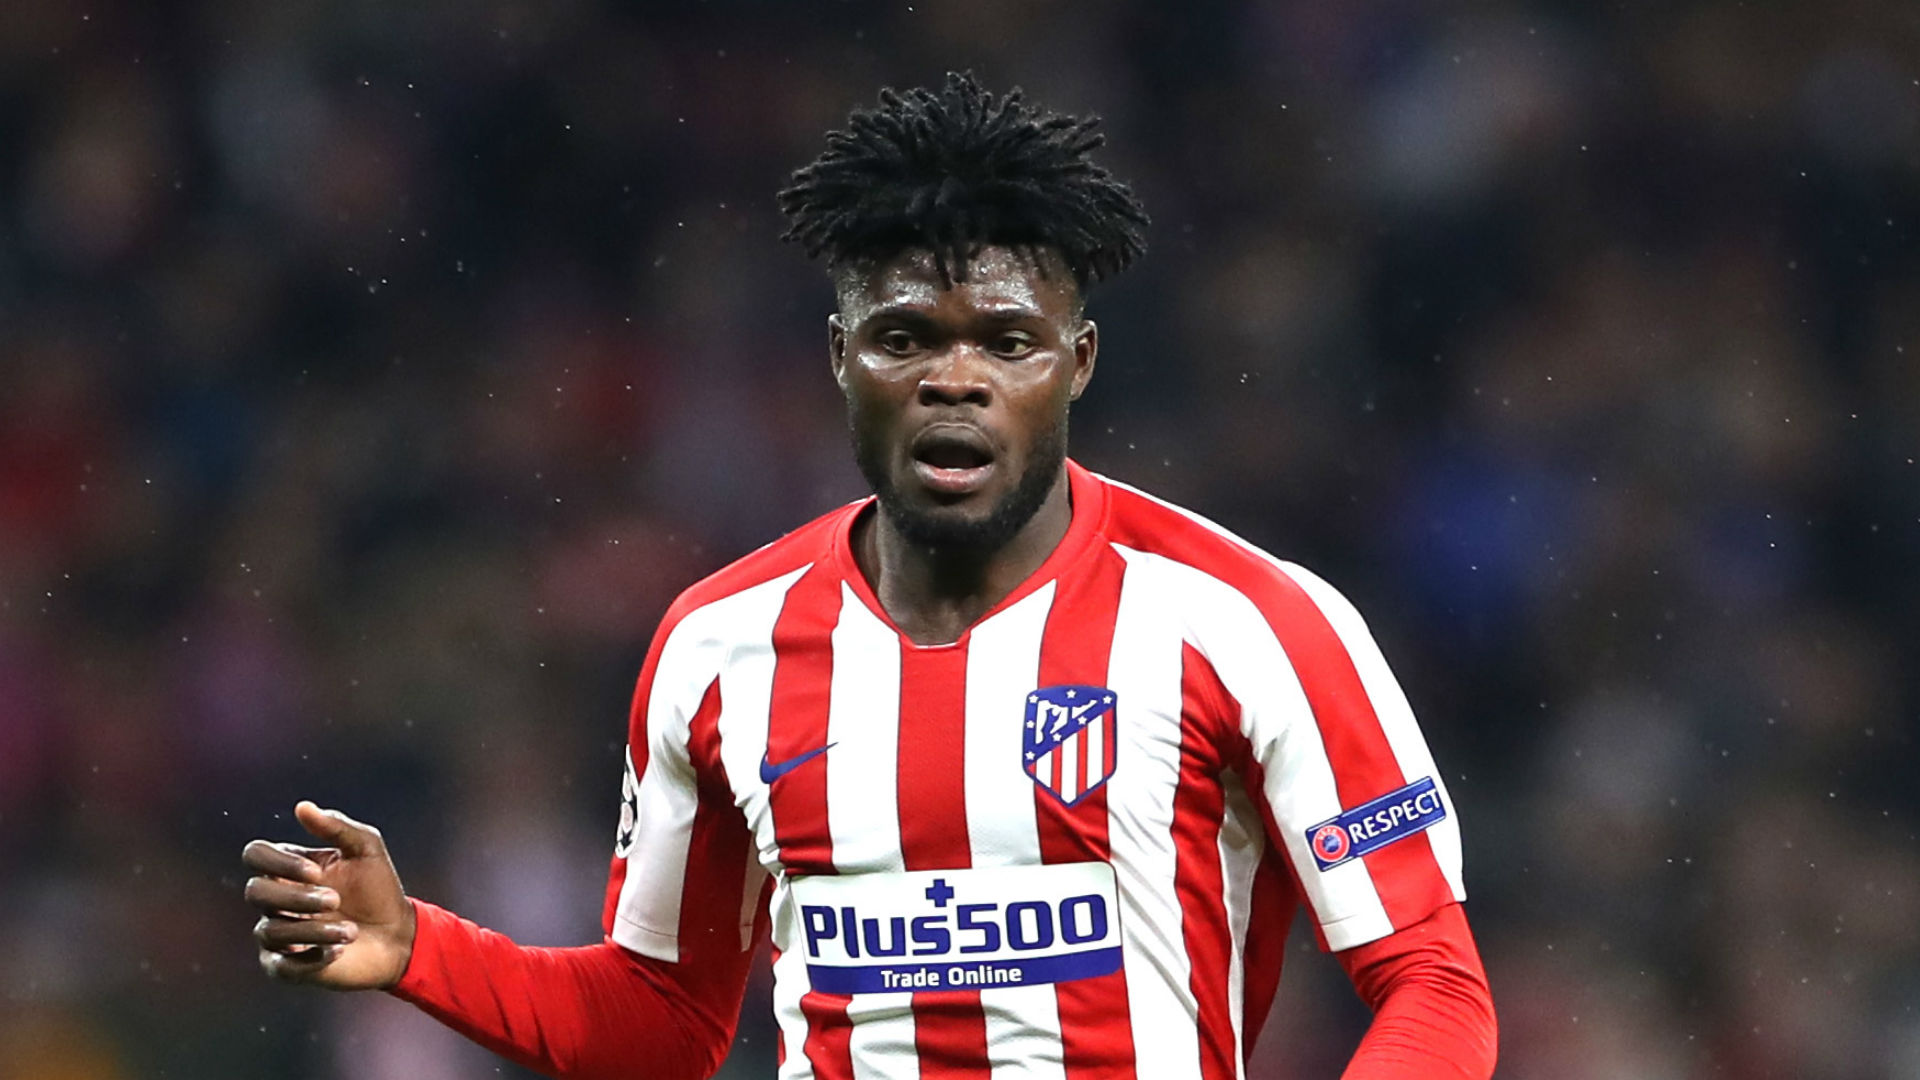 Thomas Partey to Arsenal: Why Gunners want 'complete midfielder' who is 'underappreciated' at Atletico as £45m pursuit continues